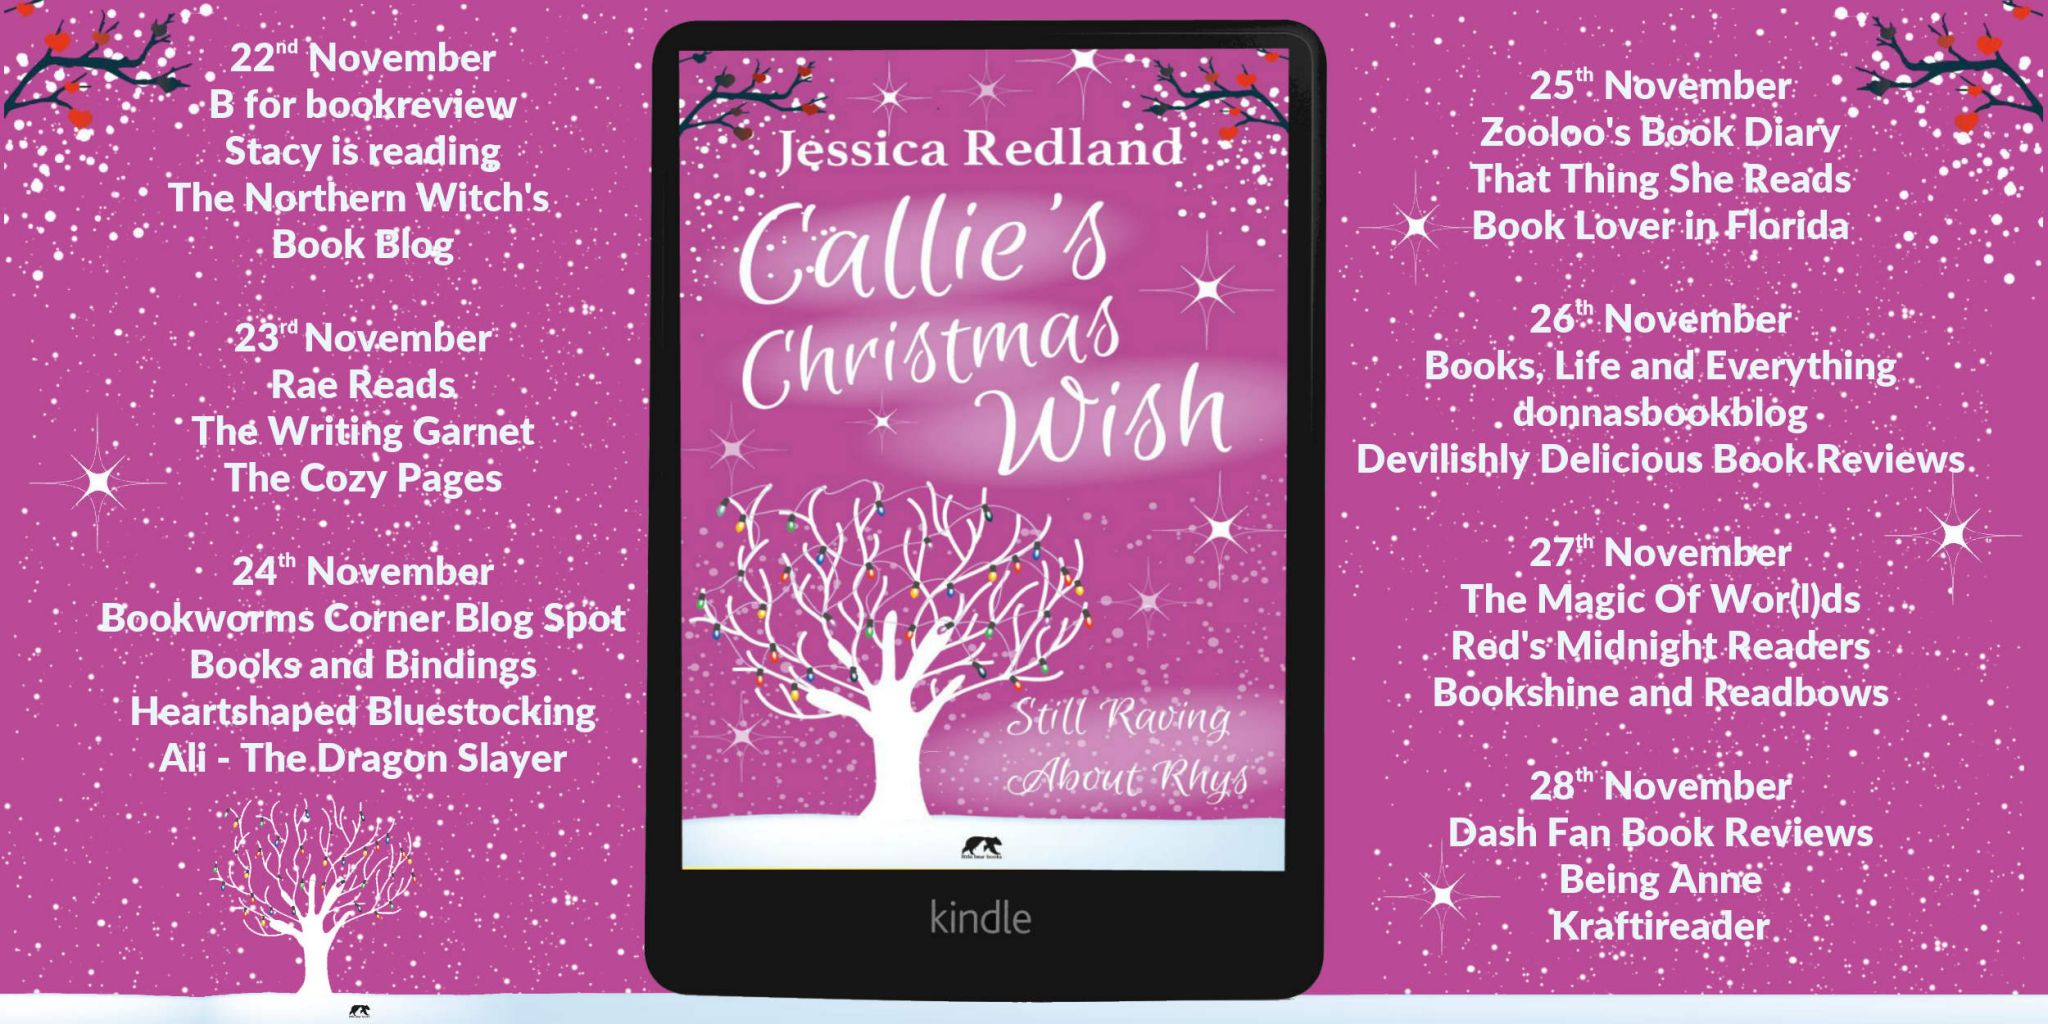 #BookReview of Callie's Christmas Wish by Jessica Redland @JessicaRedland @rararesources